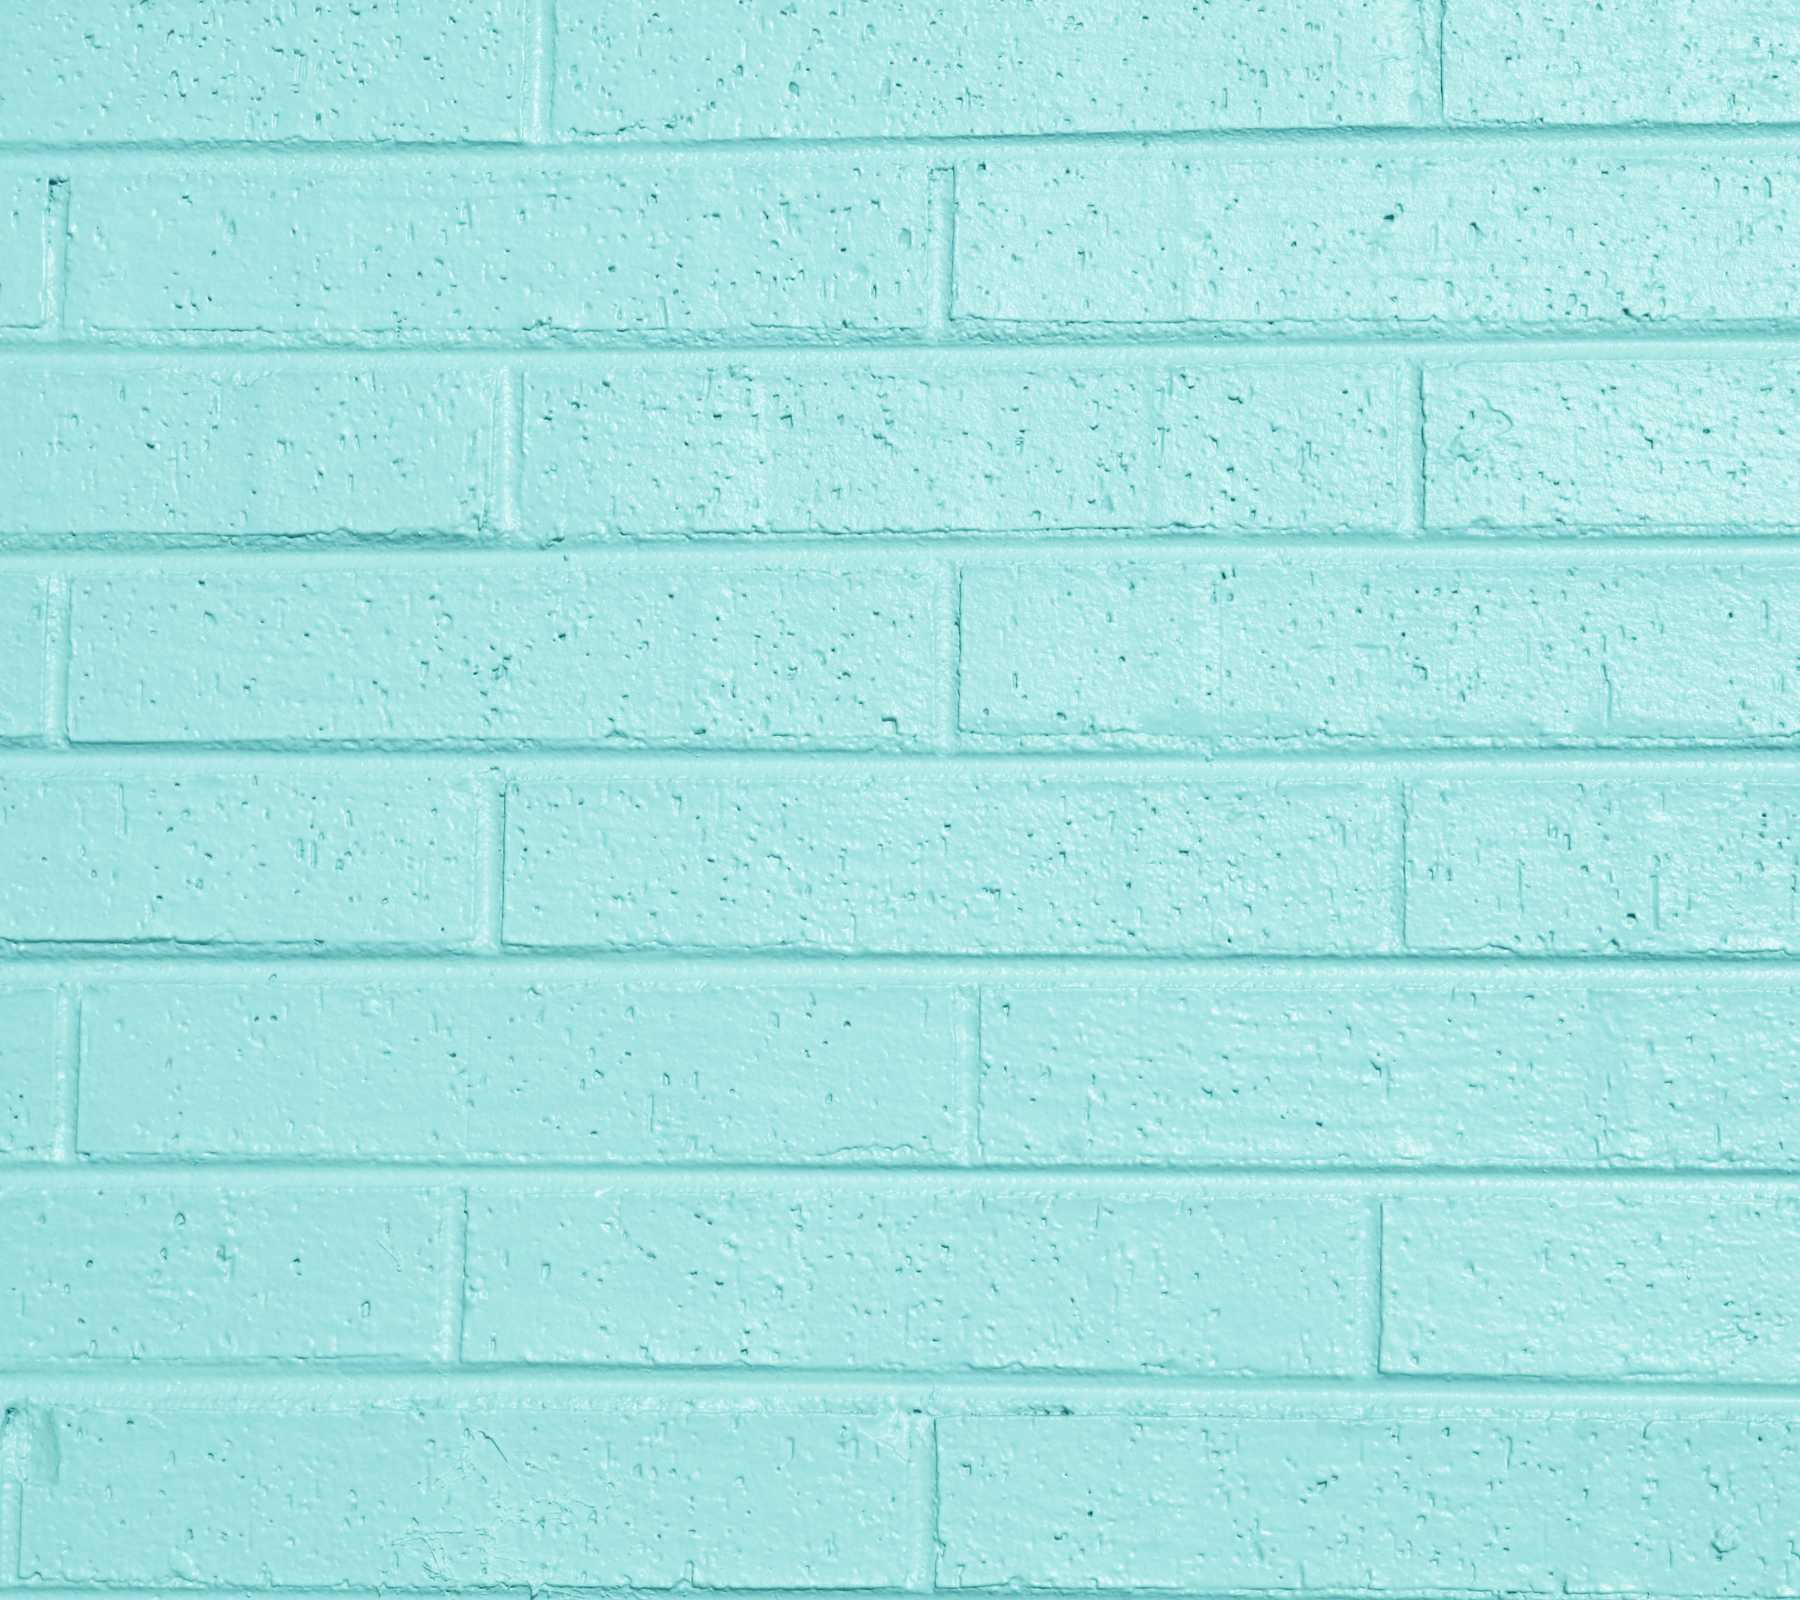 Aqua Colored Painted Brick Wall Background Image